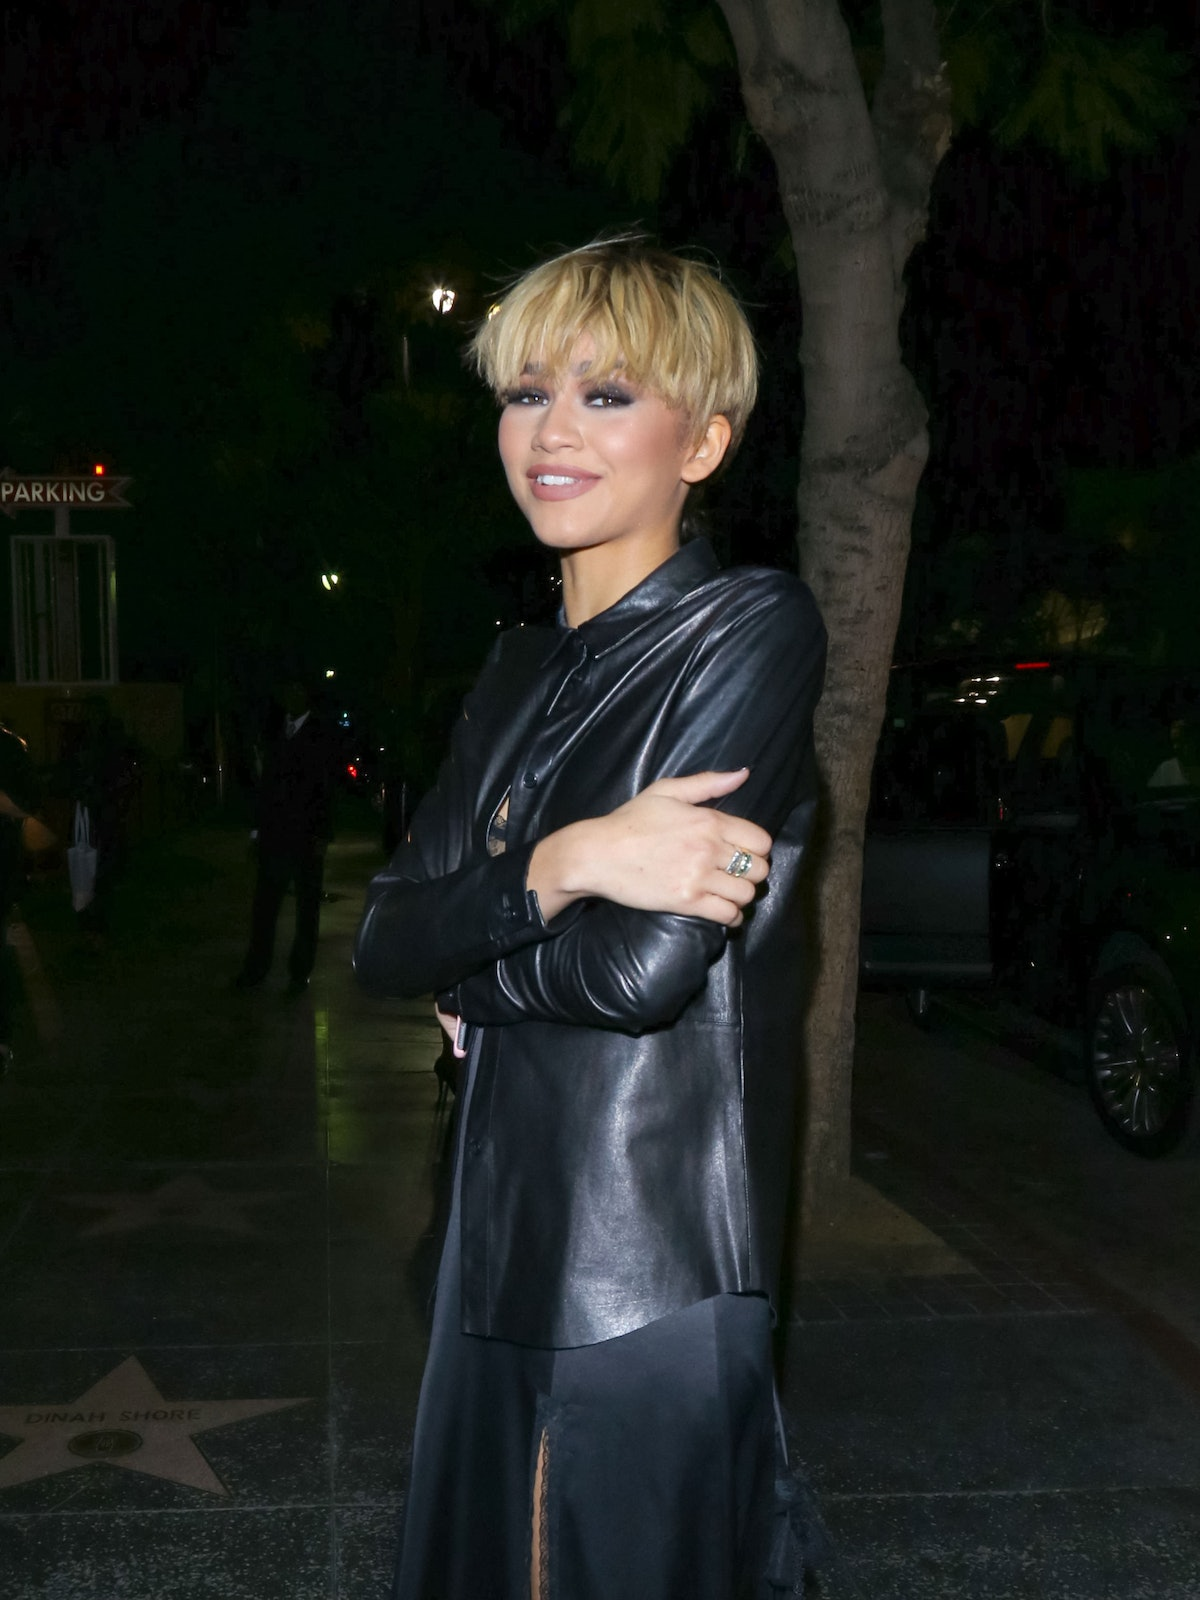 Zendaya stands with folded arms in a leather shirt with her hair cut into a short, pixie bowl cut, one of the cutest short haircuts